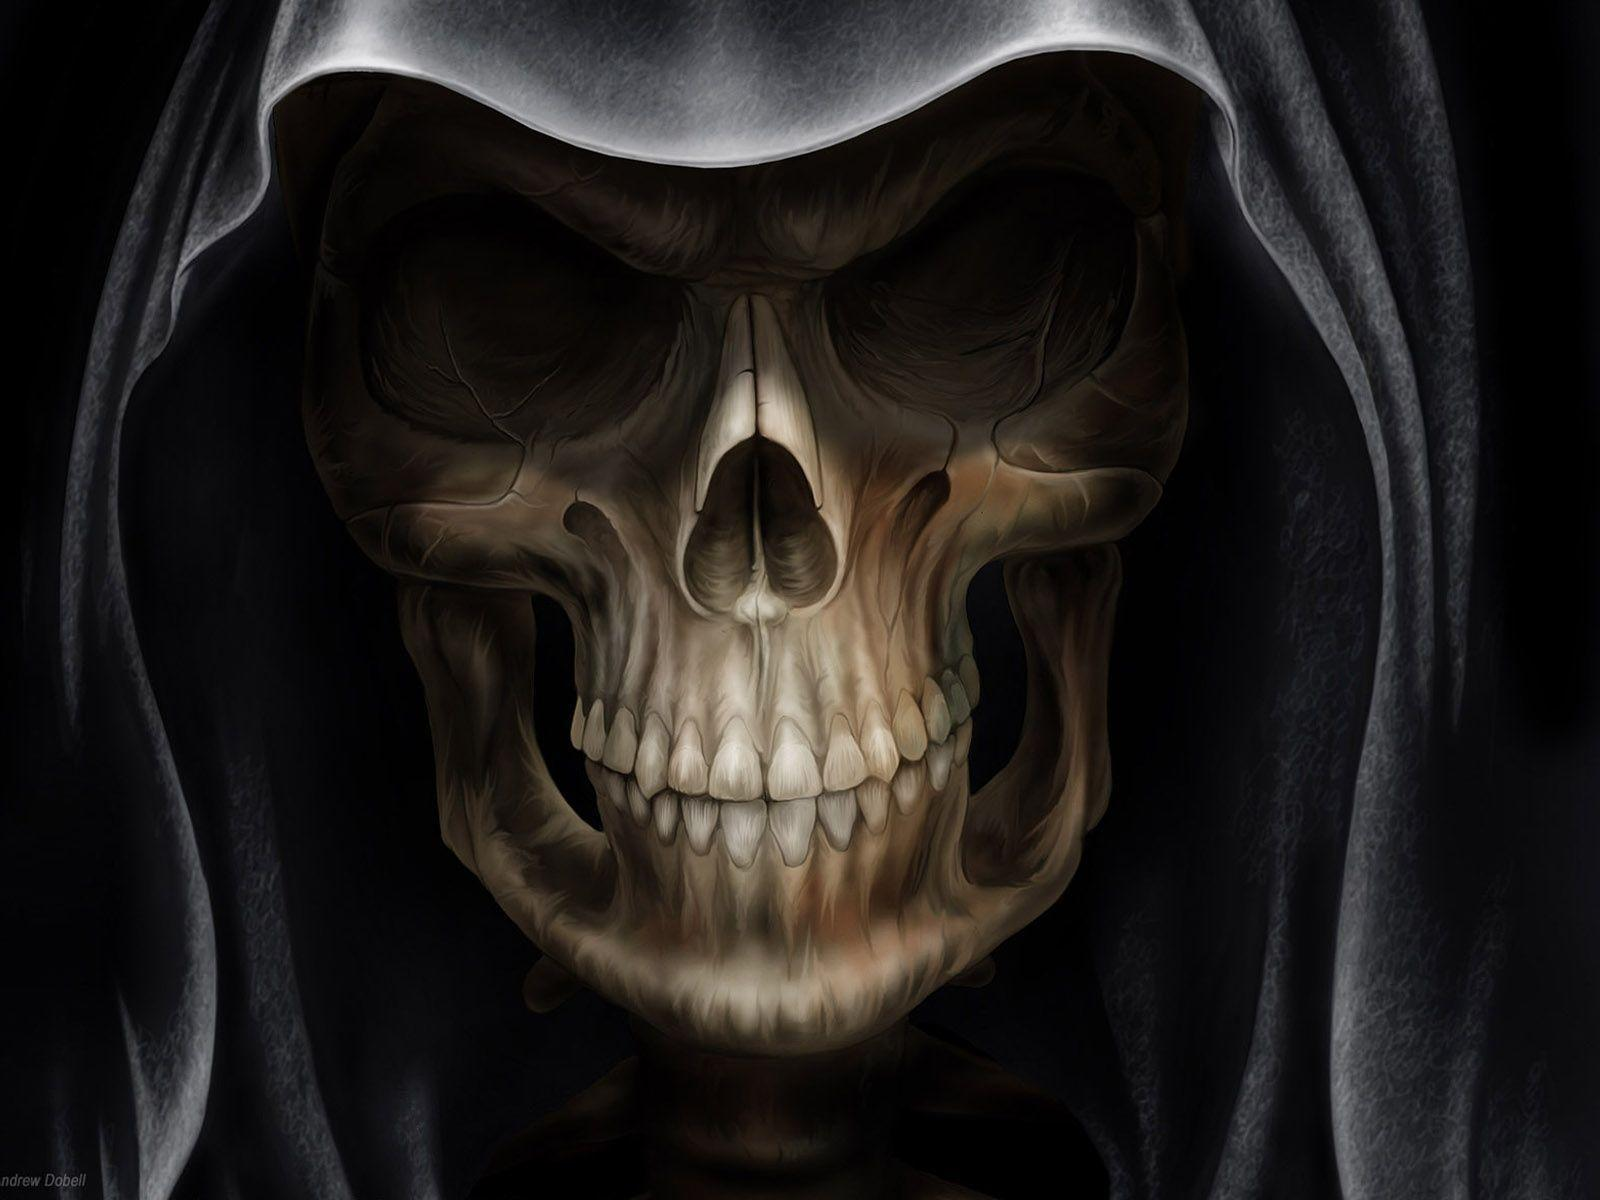 3d skull wallpapers - wallpaper cave